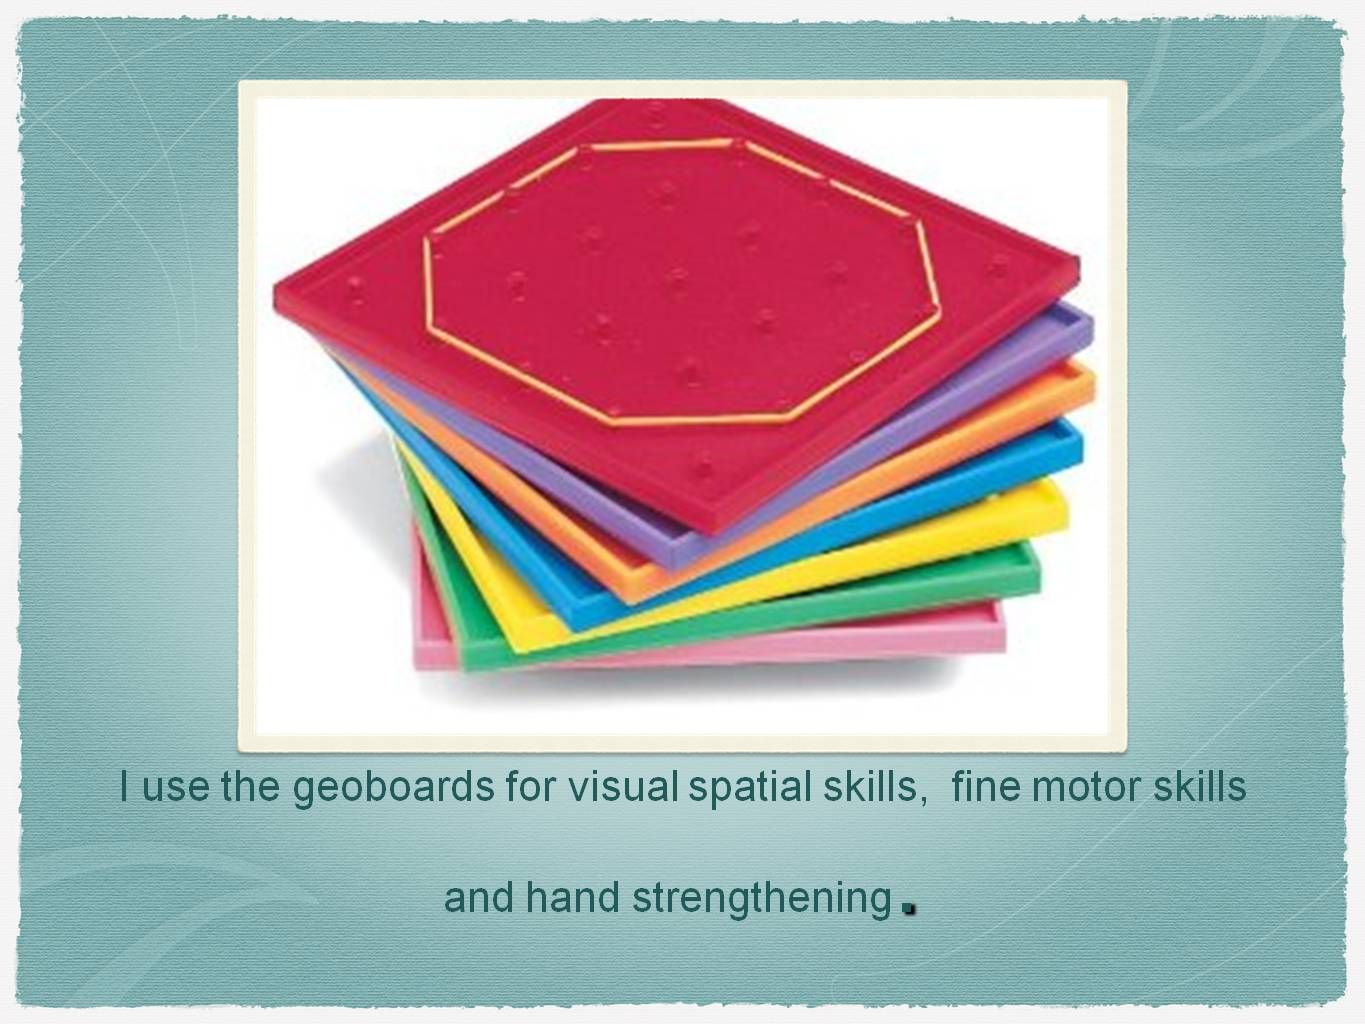 I Use These Geoboard To Develop Visual Spatial Skills And